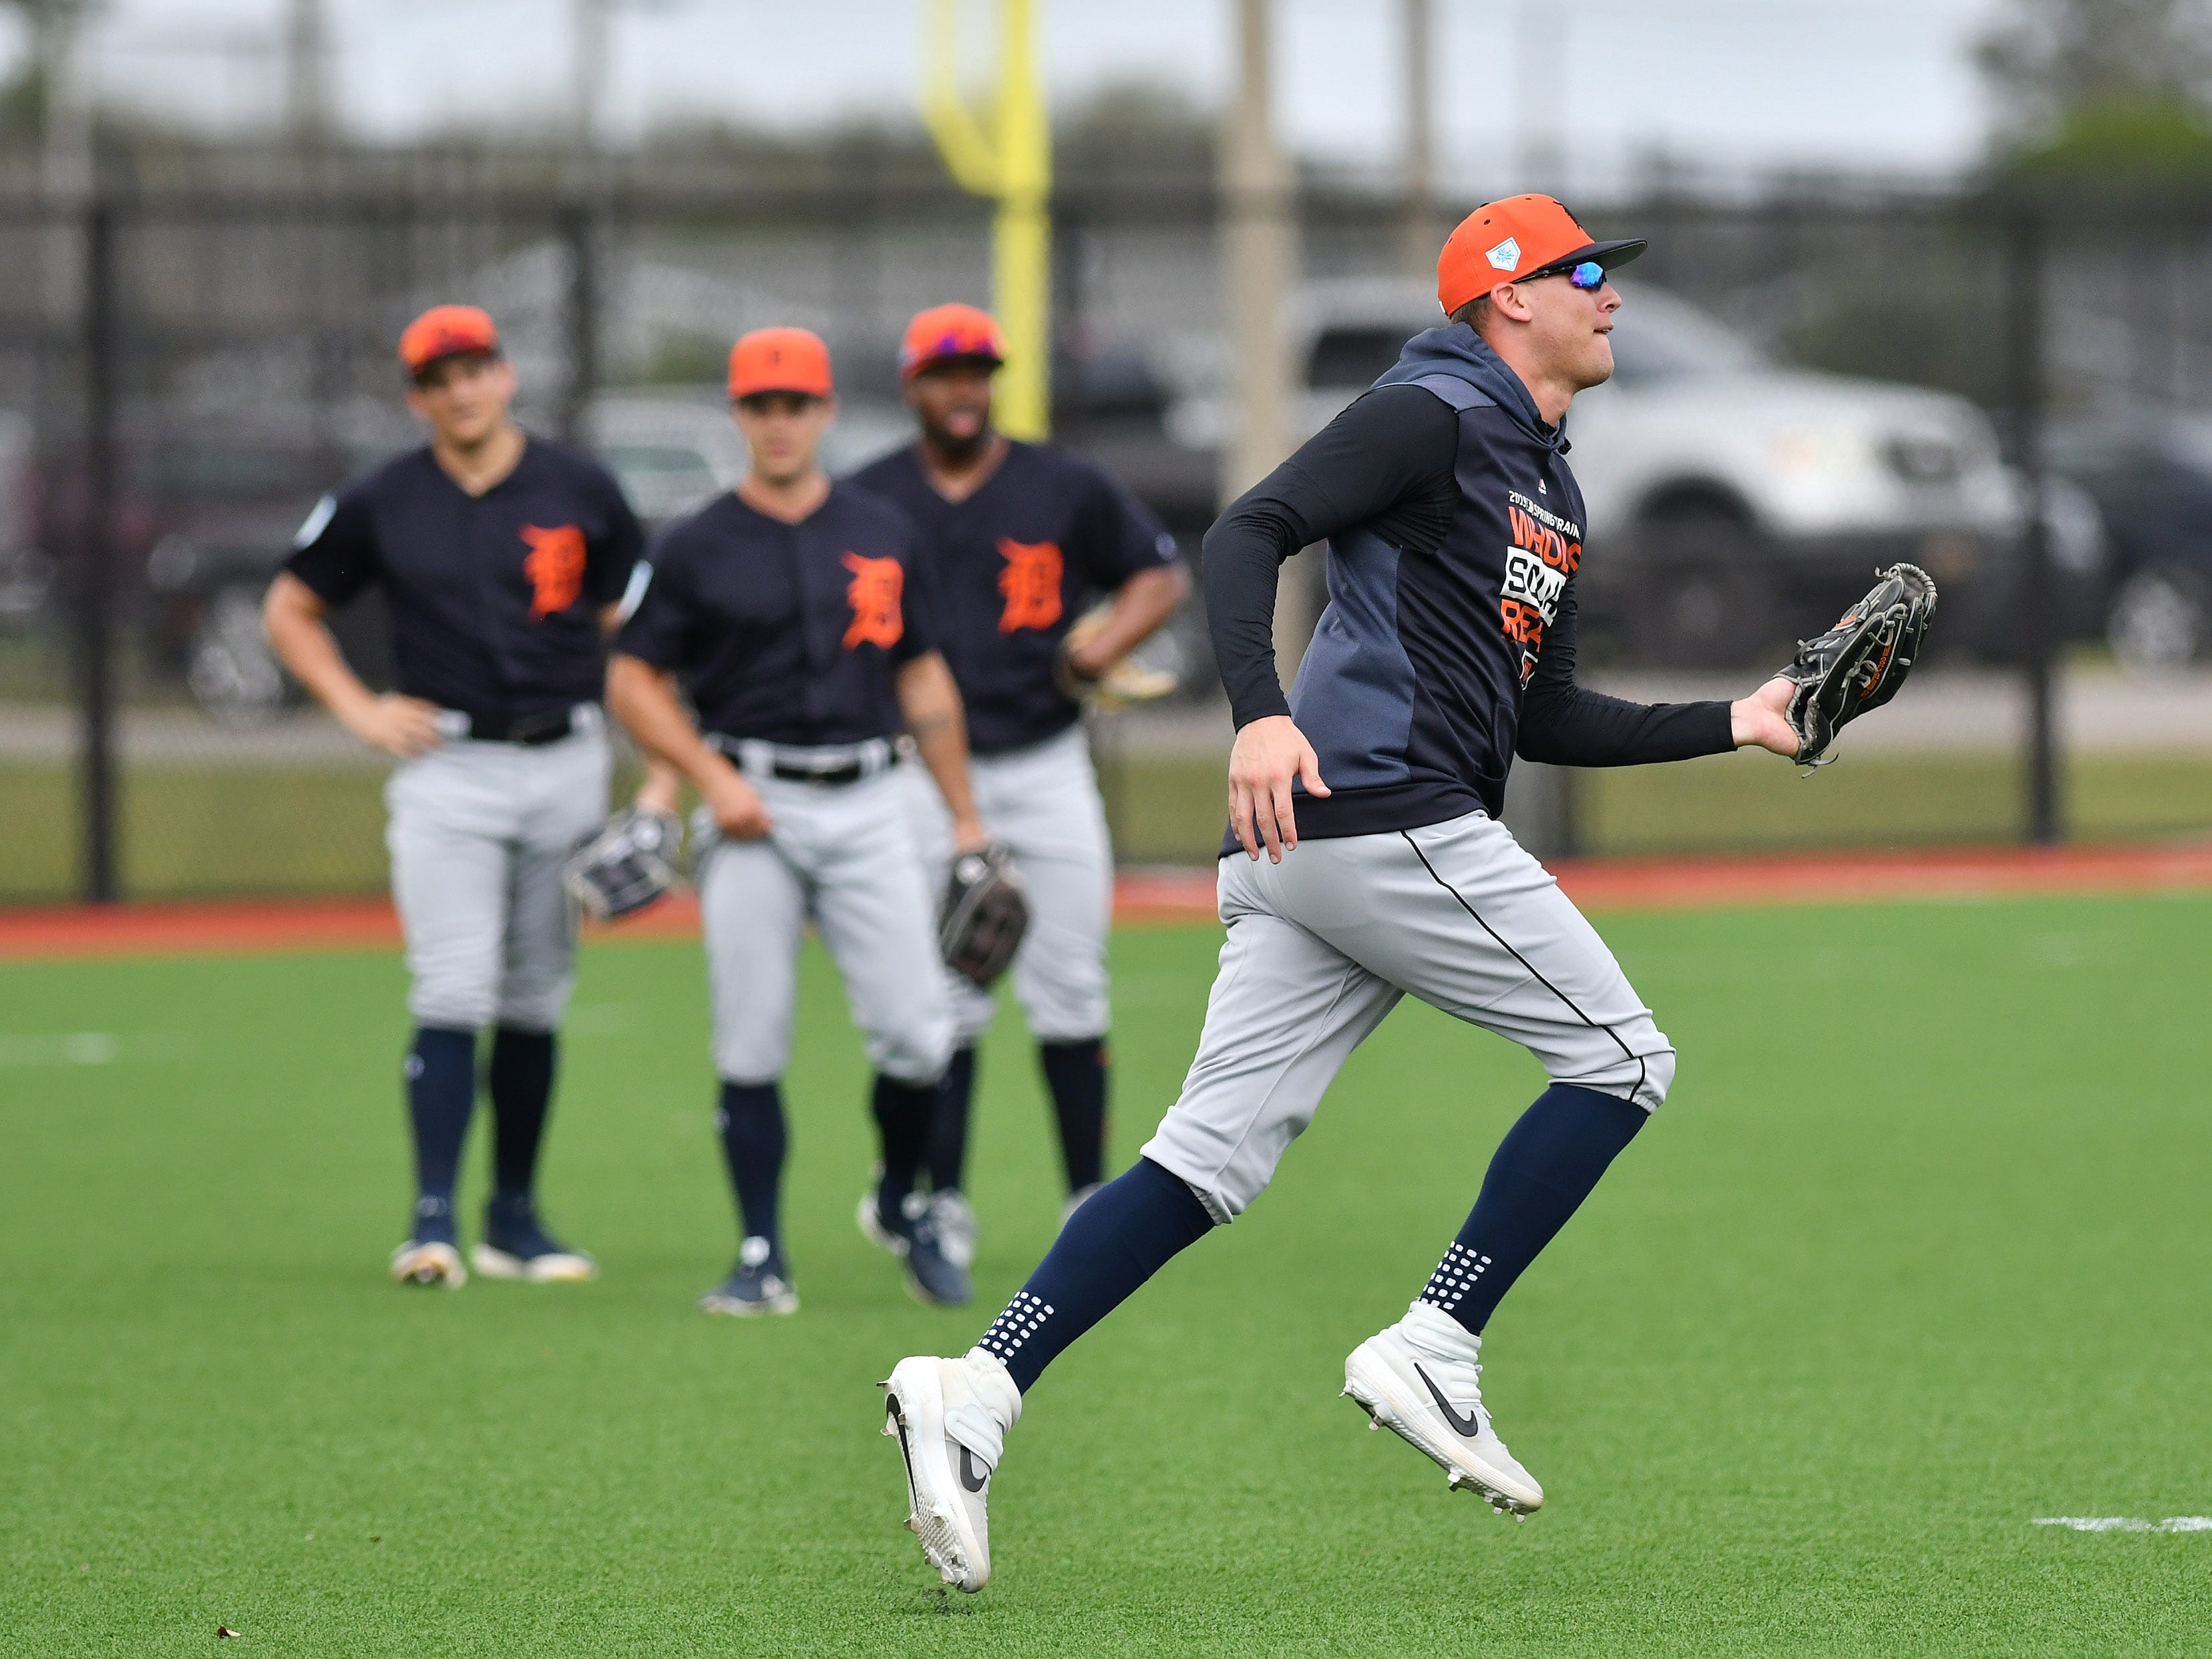 Tigers outfielder JaCoby Jones after making a running catch during outfield drills.